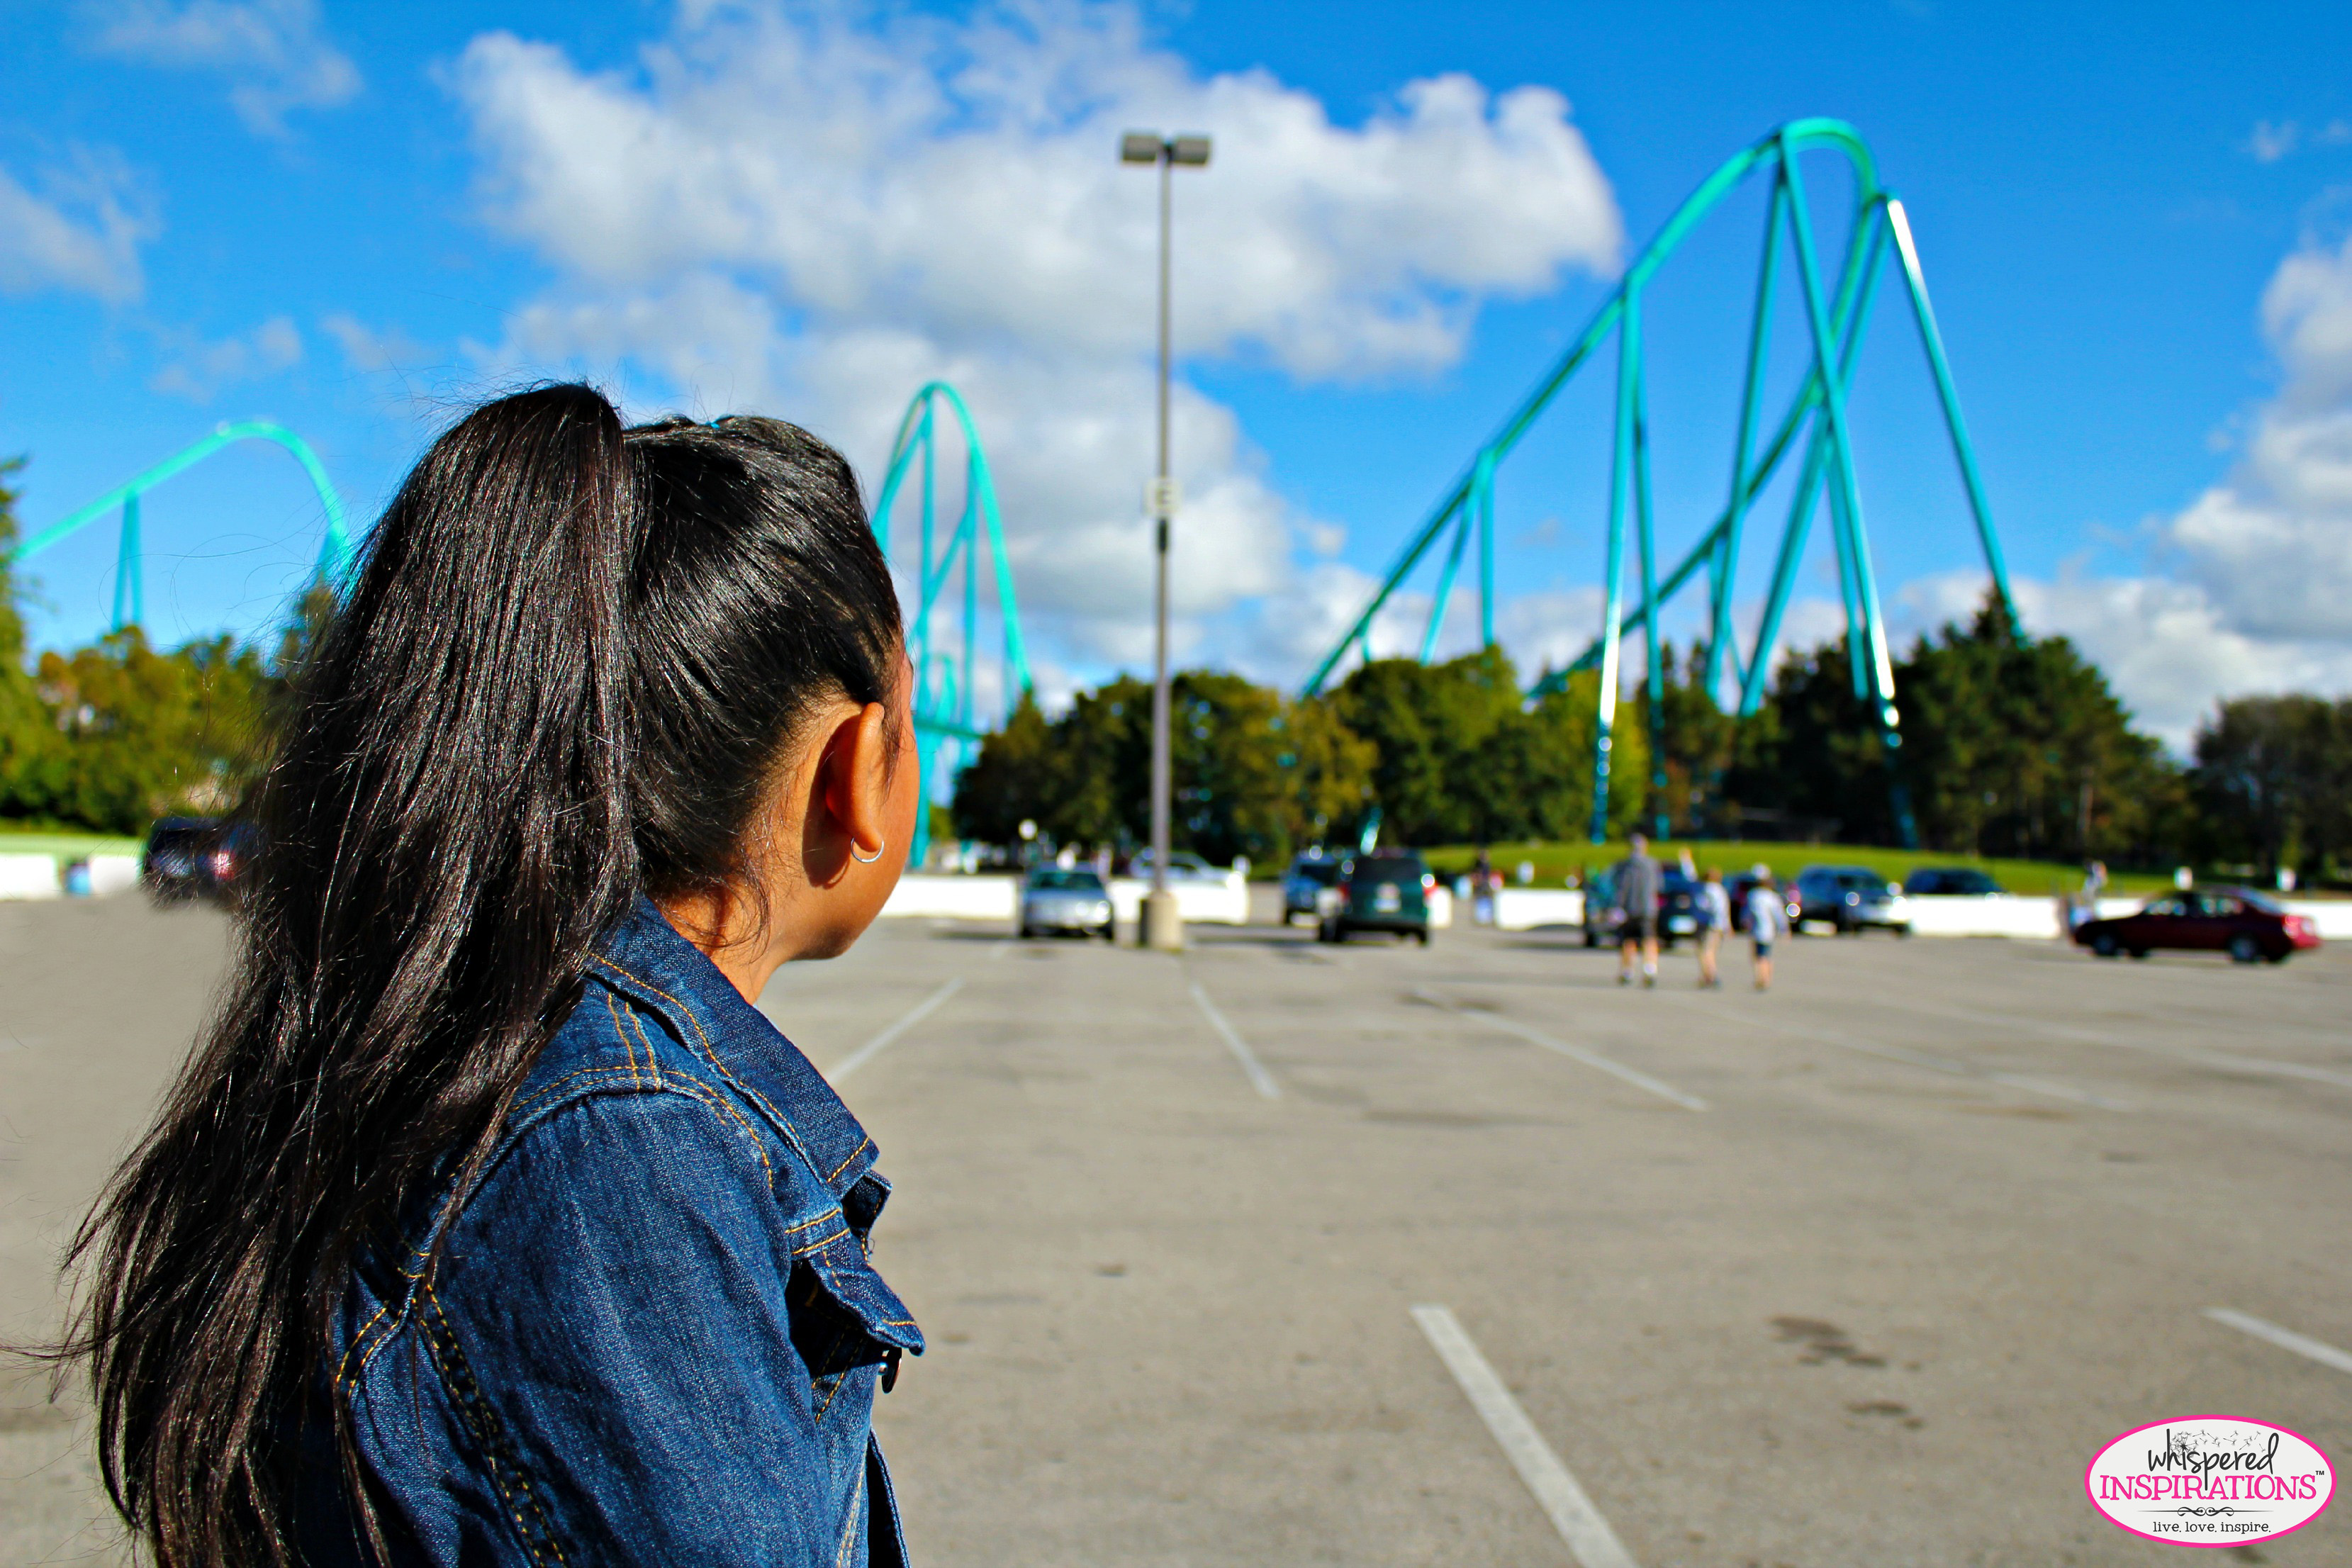 Canada's Wonderland: Enjoy Family Fun, Good Food and Thrills to Last a Lifetime! #CWSummerFun